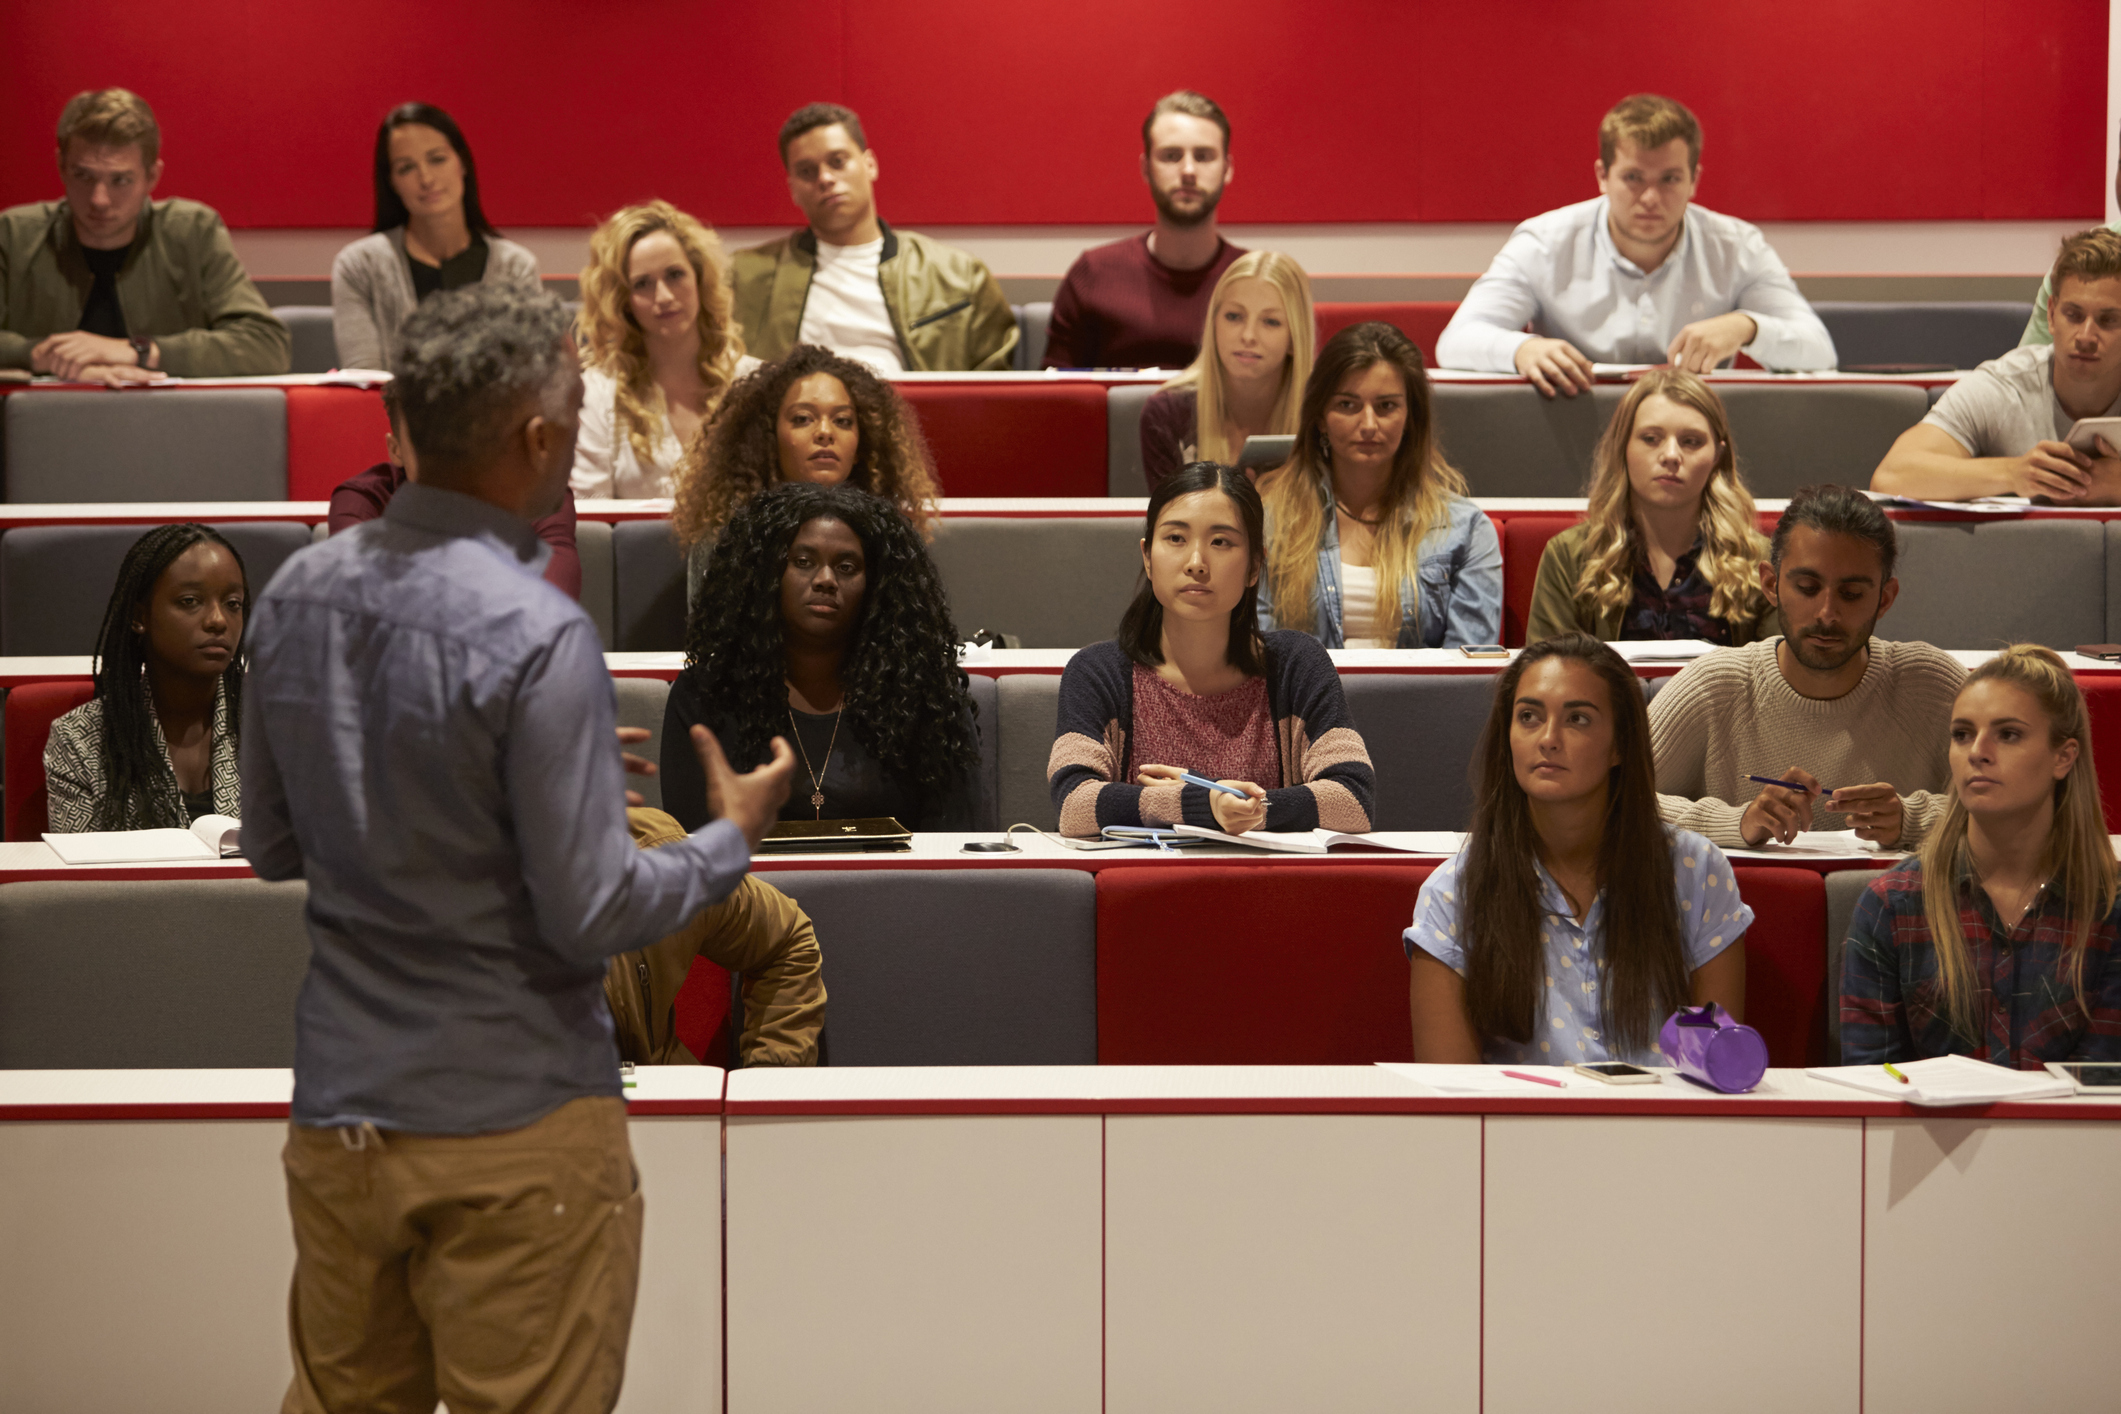 Professor lectures to postsecondary education students